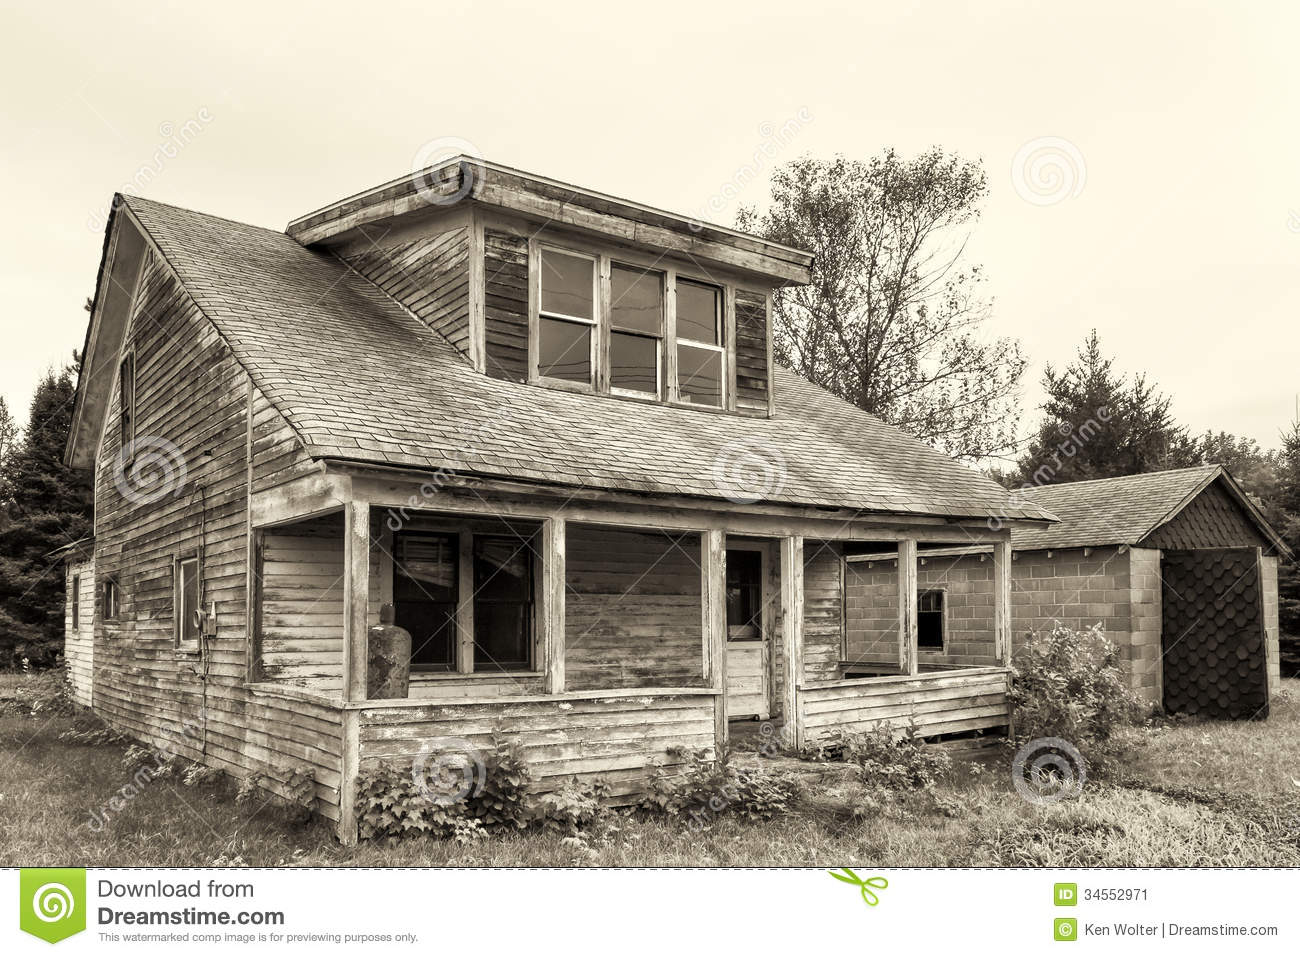 Abandoned And Dilapidated House Stock Image.